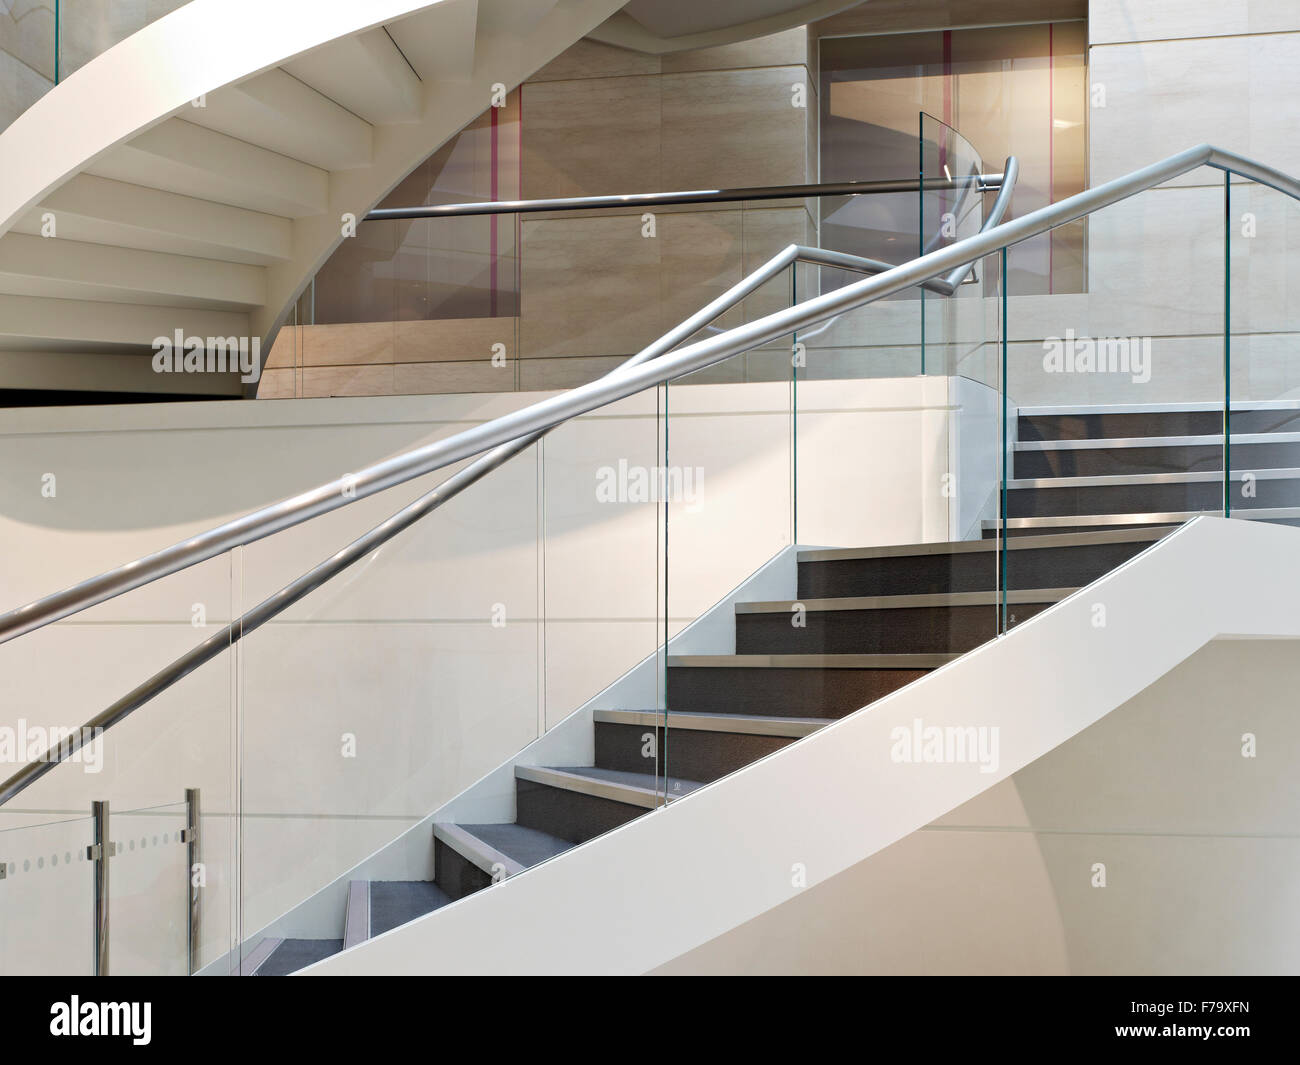 Metal handrail and staircase in Linklaters office headquarters building, London, England, UK - Stock Image